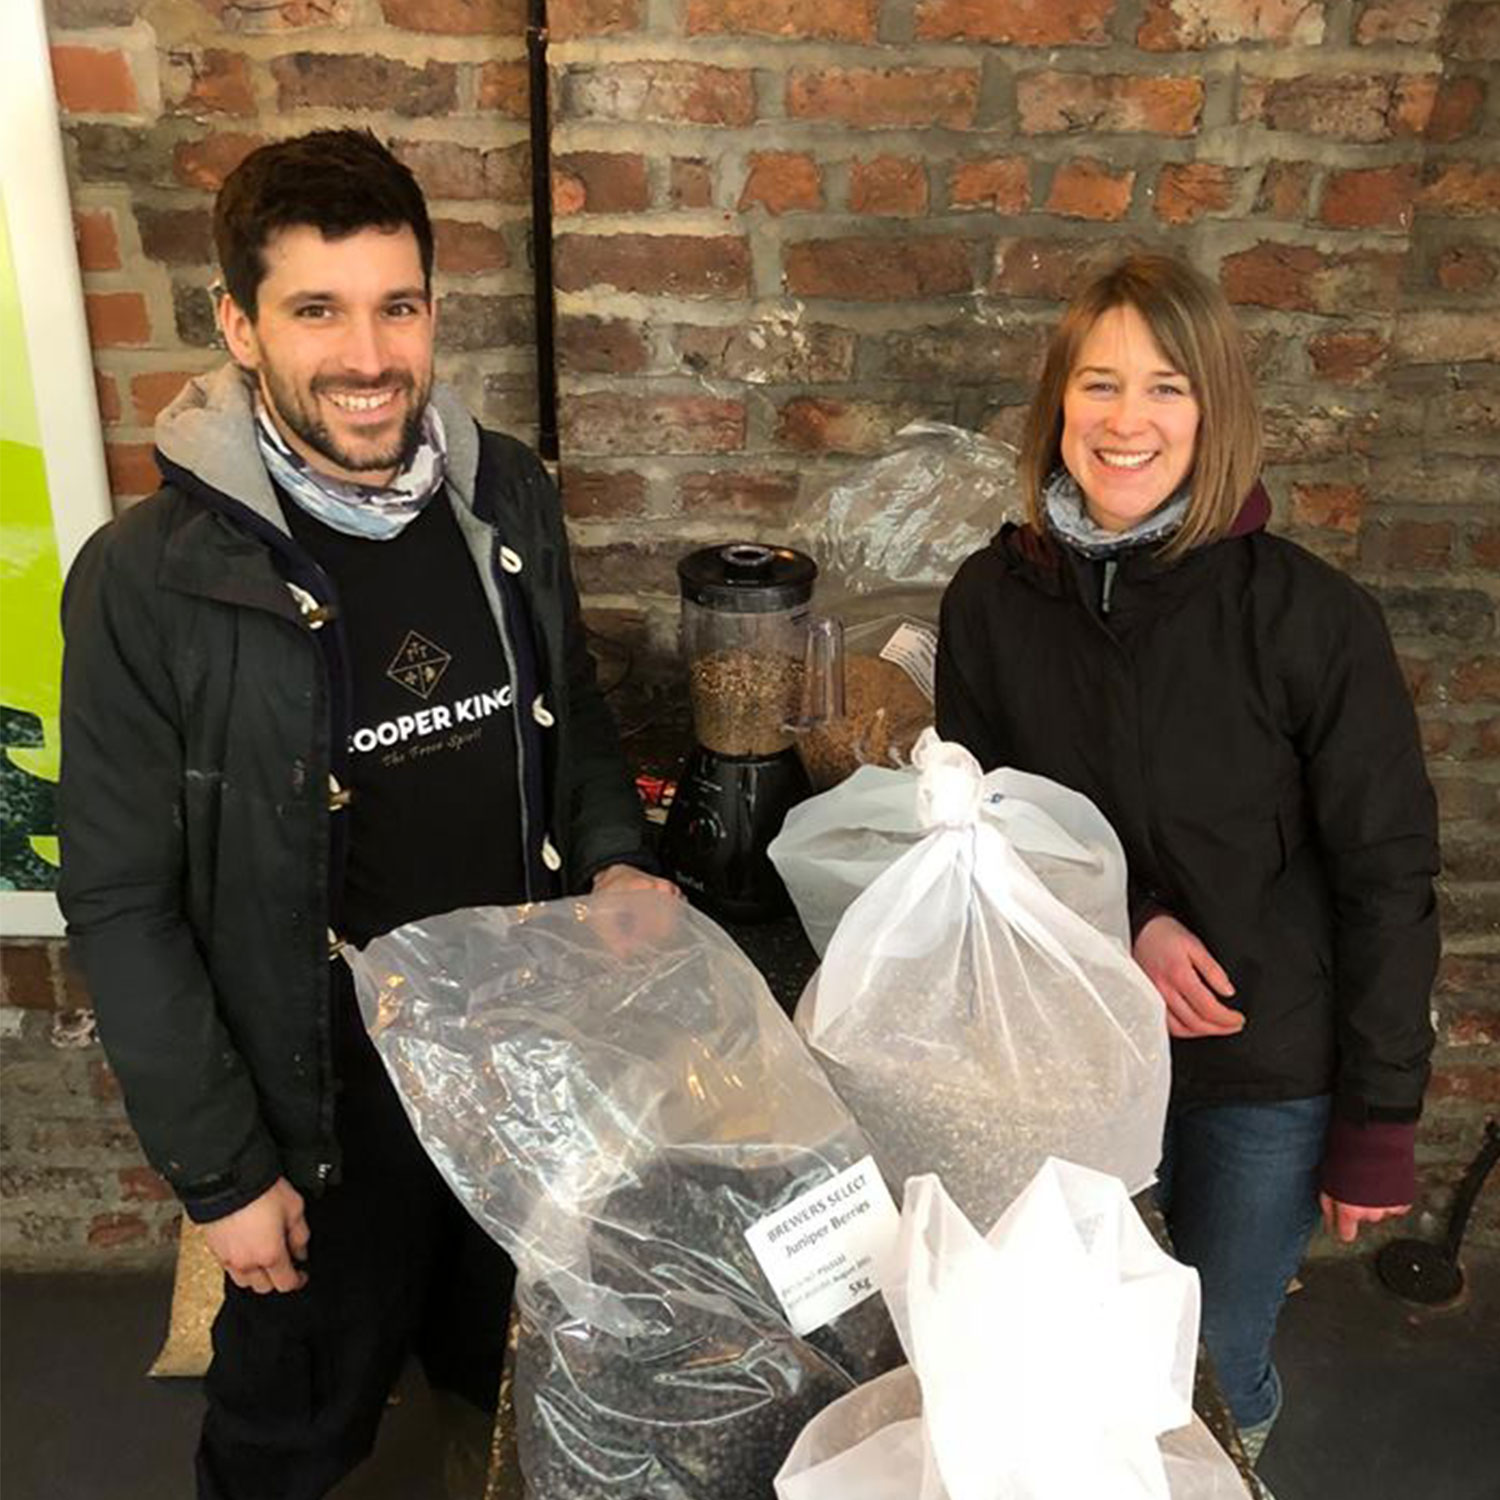 Abbie and Chris of Cooper King Distillery with kilos of botanicals for the brew